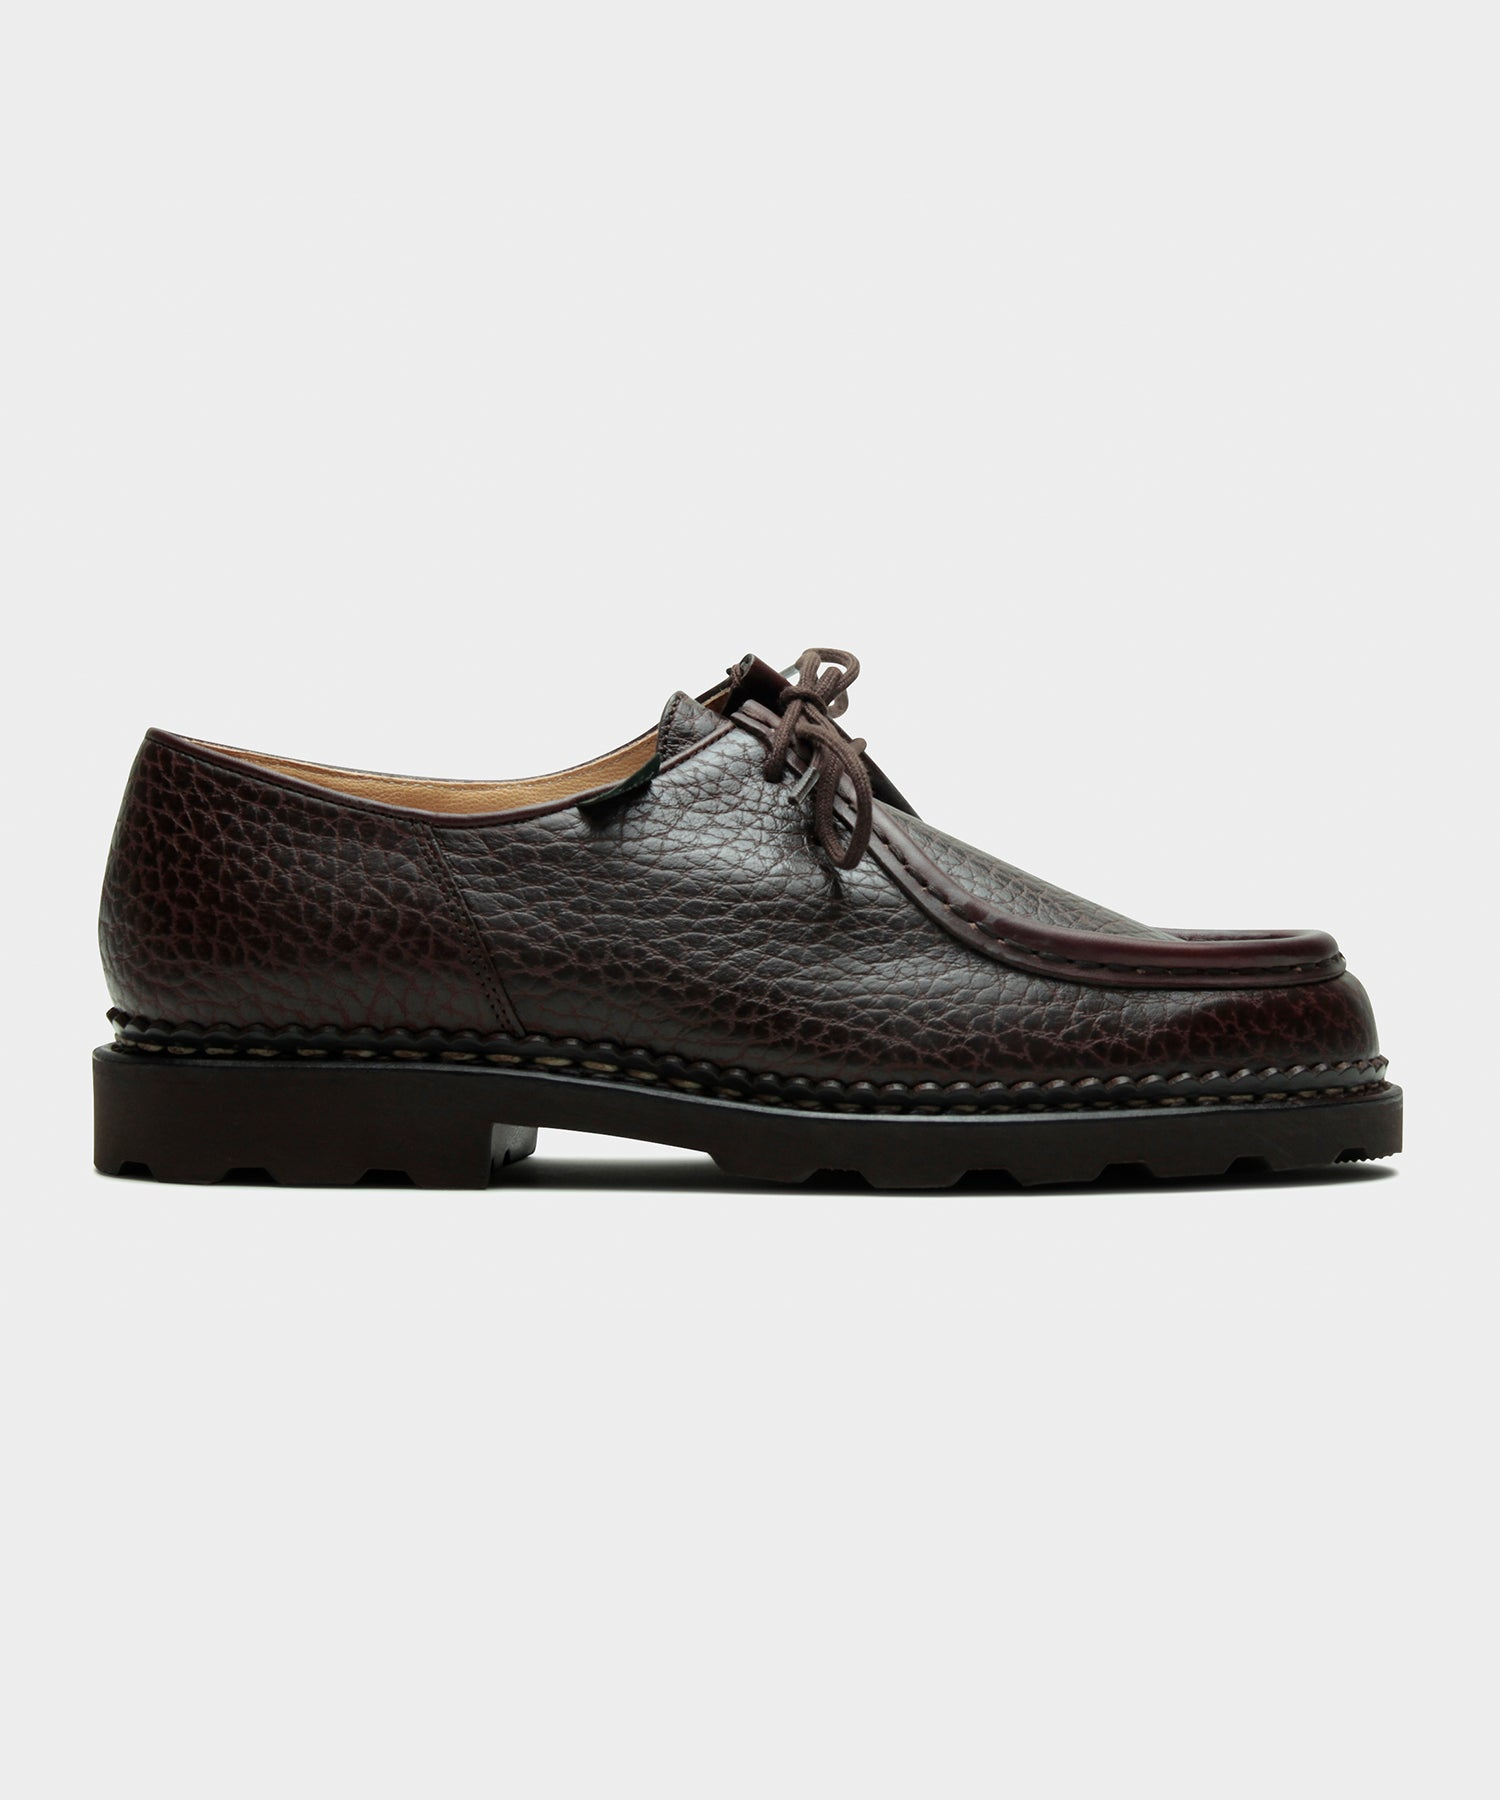 Paraboot Michael Bison Shoe in Brown